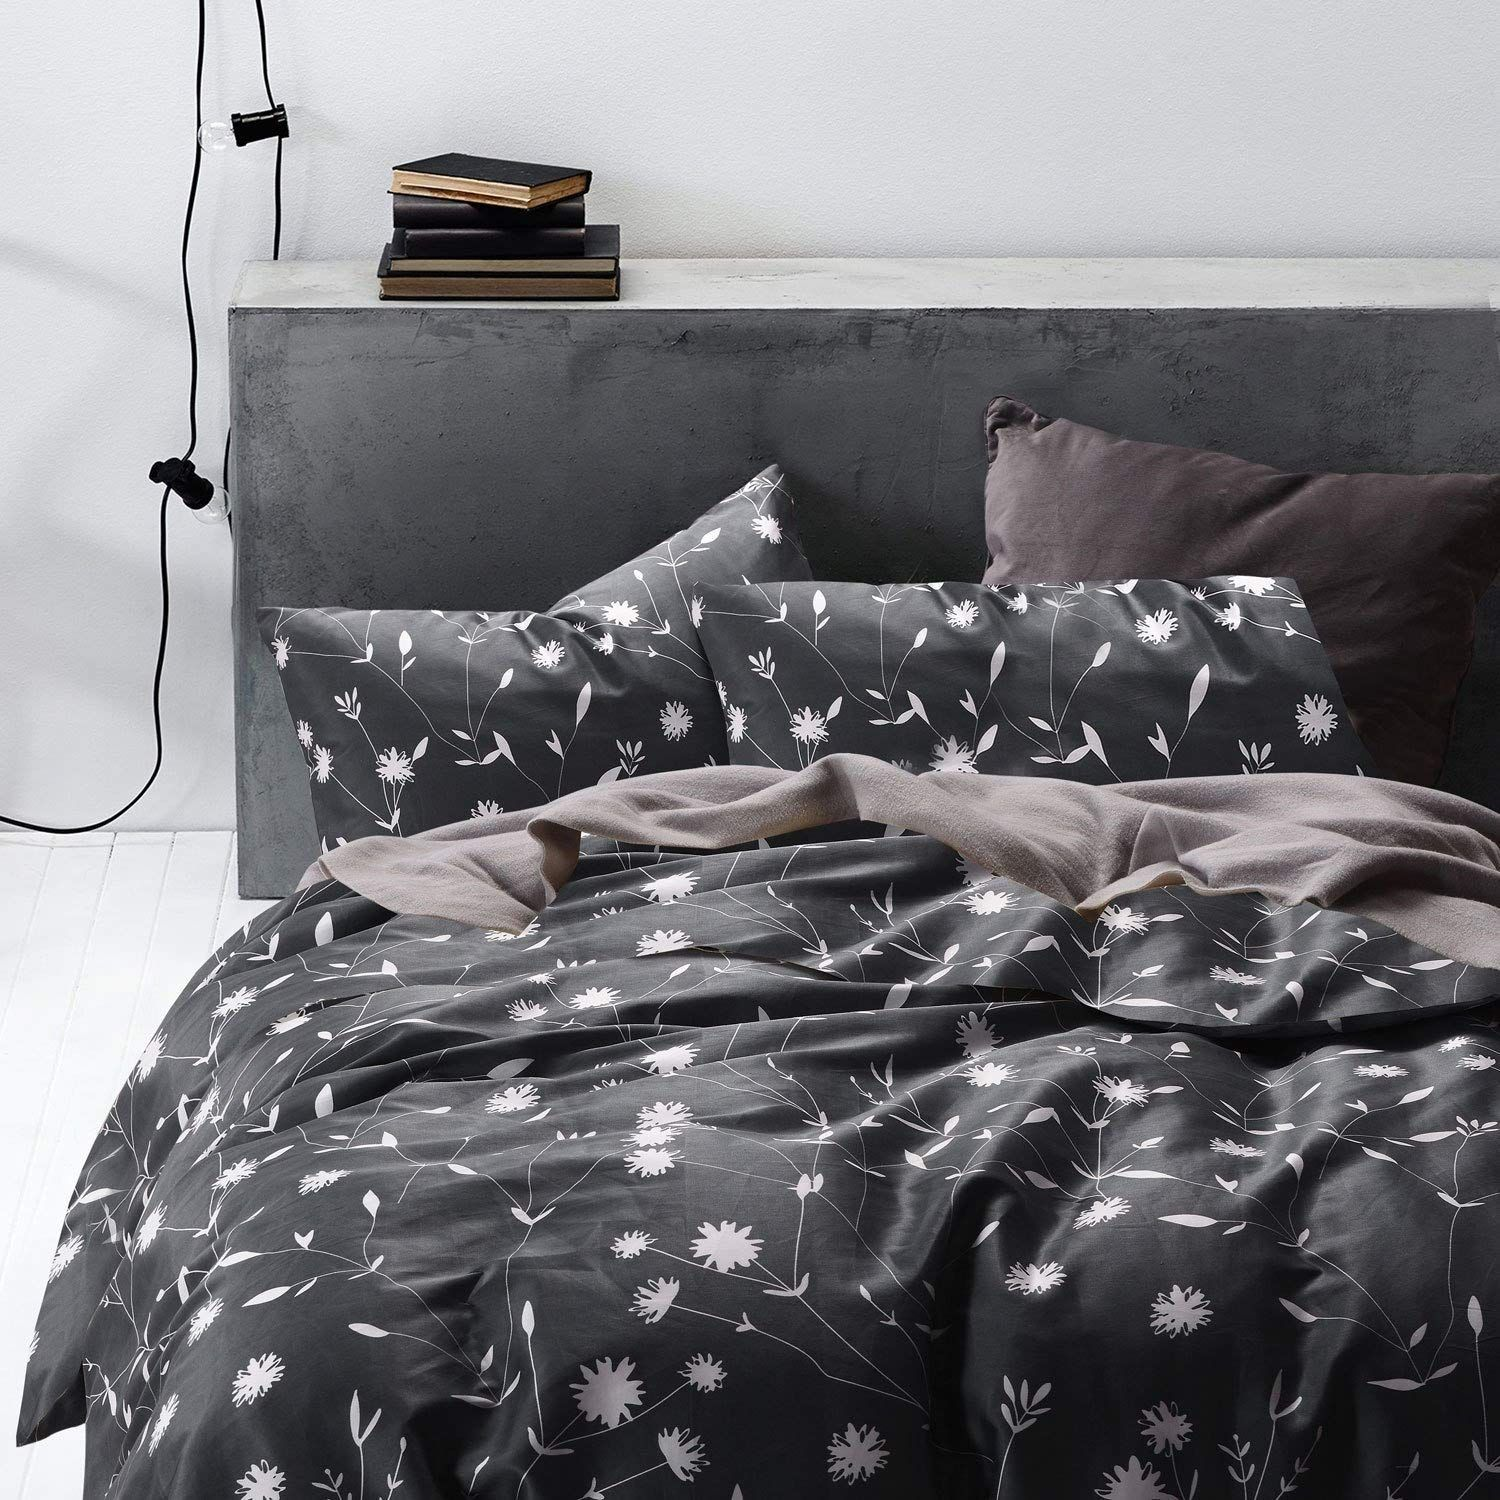 Amazonsmile Wake In Cloud Dark Gray Duvet Cover Set 100 Cotton Bedding White Floral F Bedding Sets Master Bedroom Duvet Cover Sets Dark Grey Duvet Covers